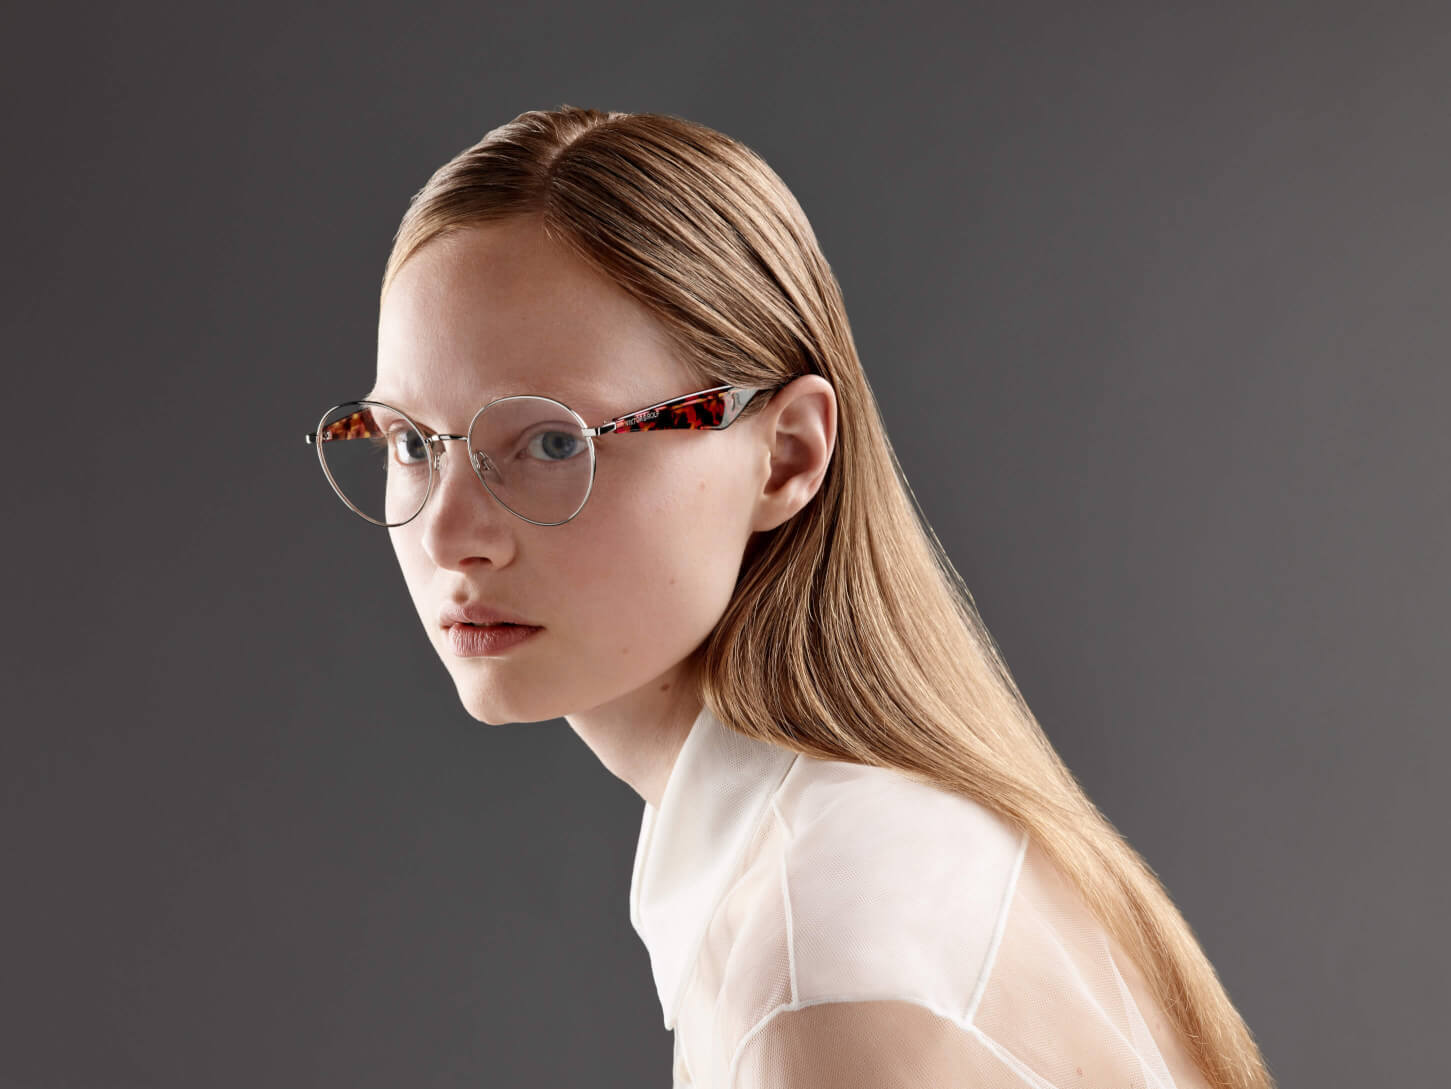 Iconic Dutch fashion designer brand, Viktor&Rolf has unveiled its latest eyewear collection exclusively at Specsavers.